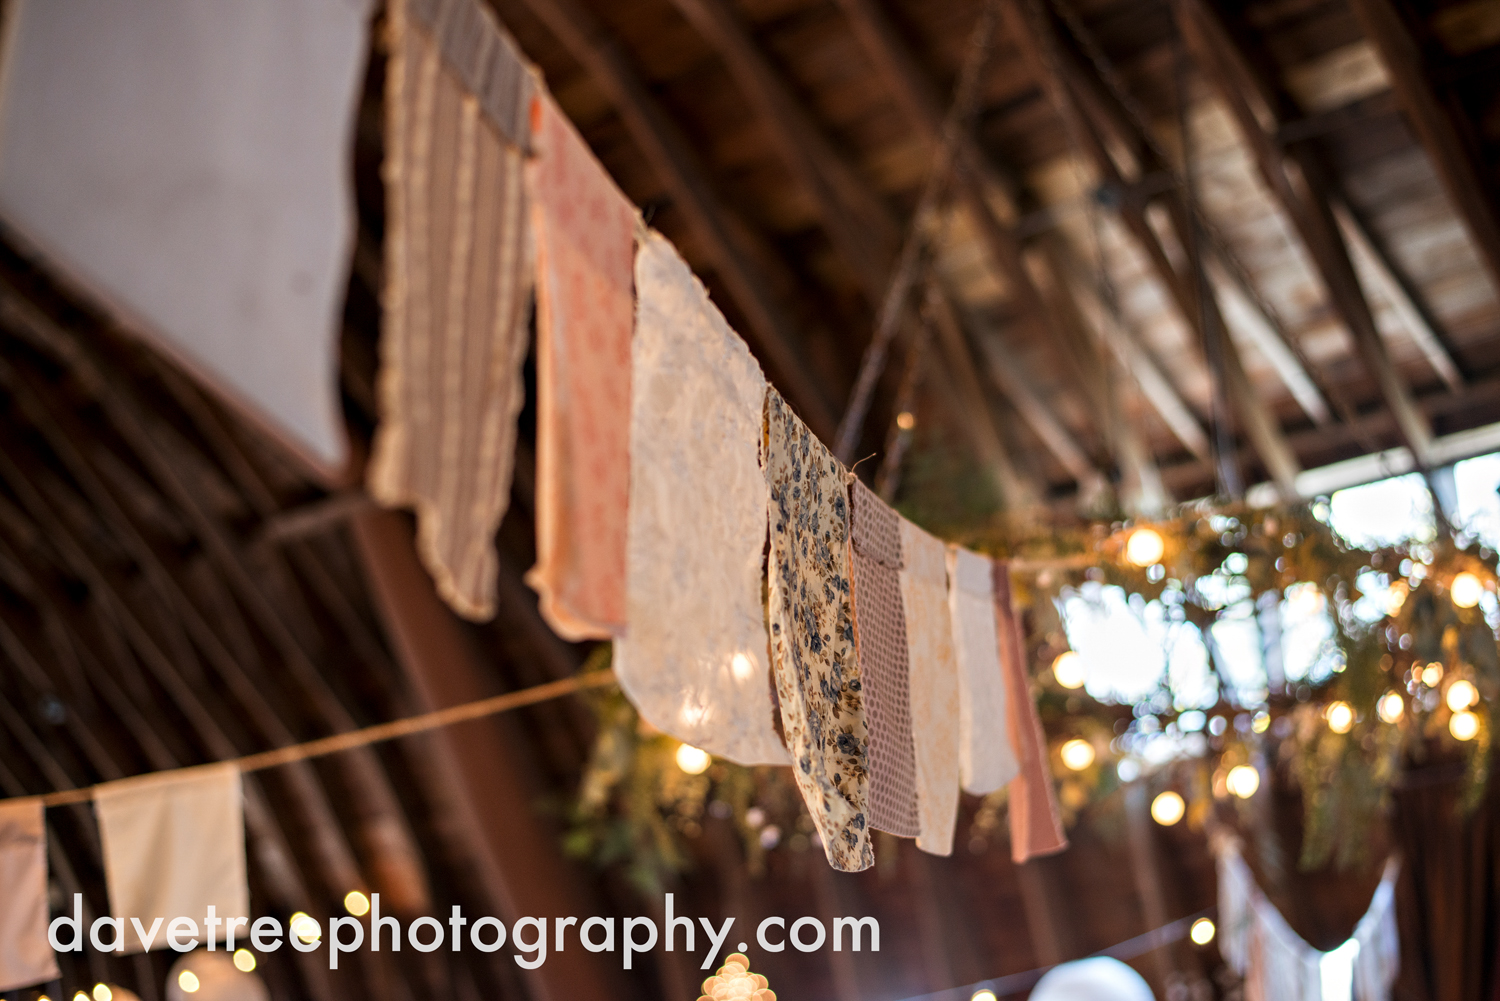 benton_harbor_wedding_photographer_blue_dress_barn_84.jpg